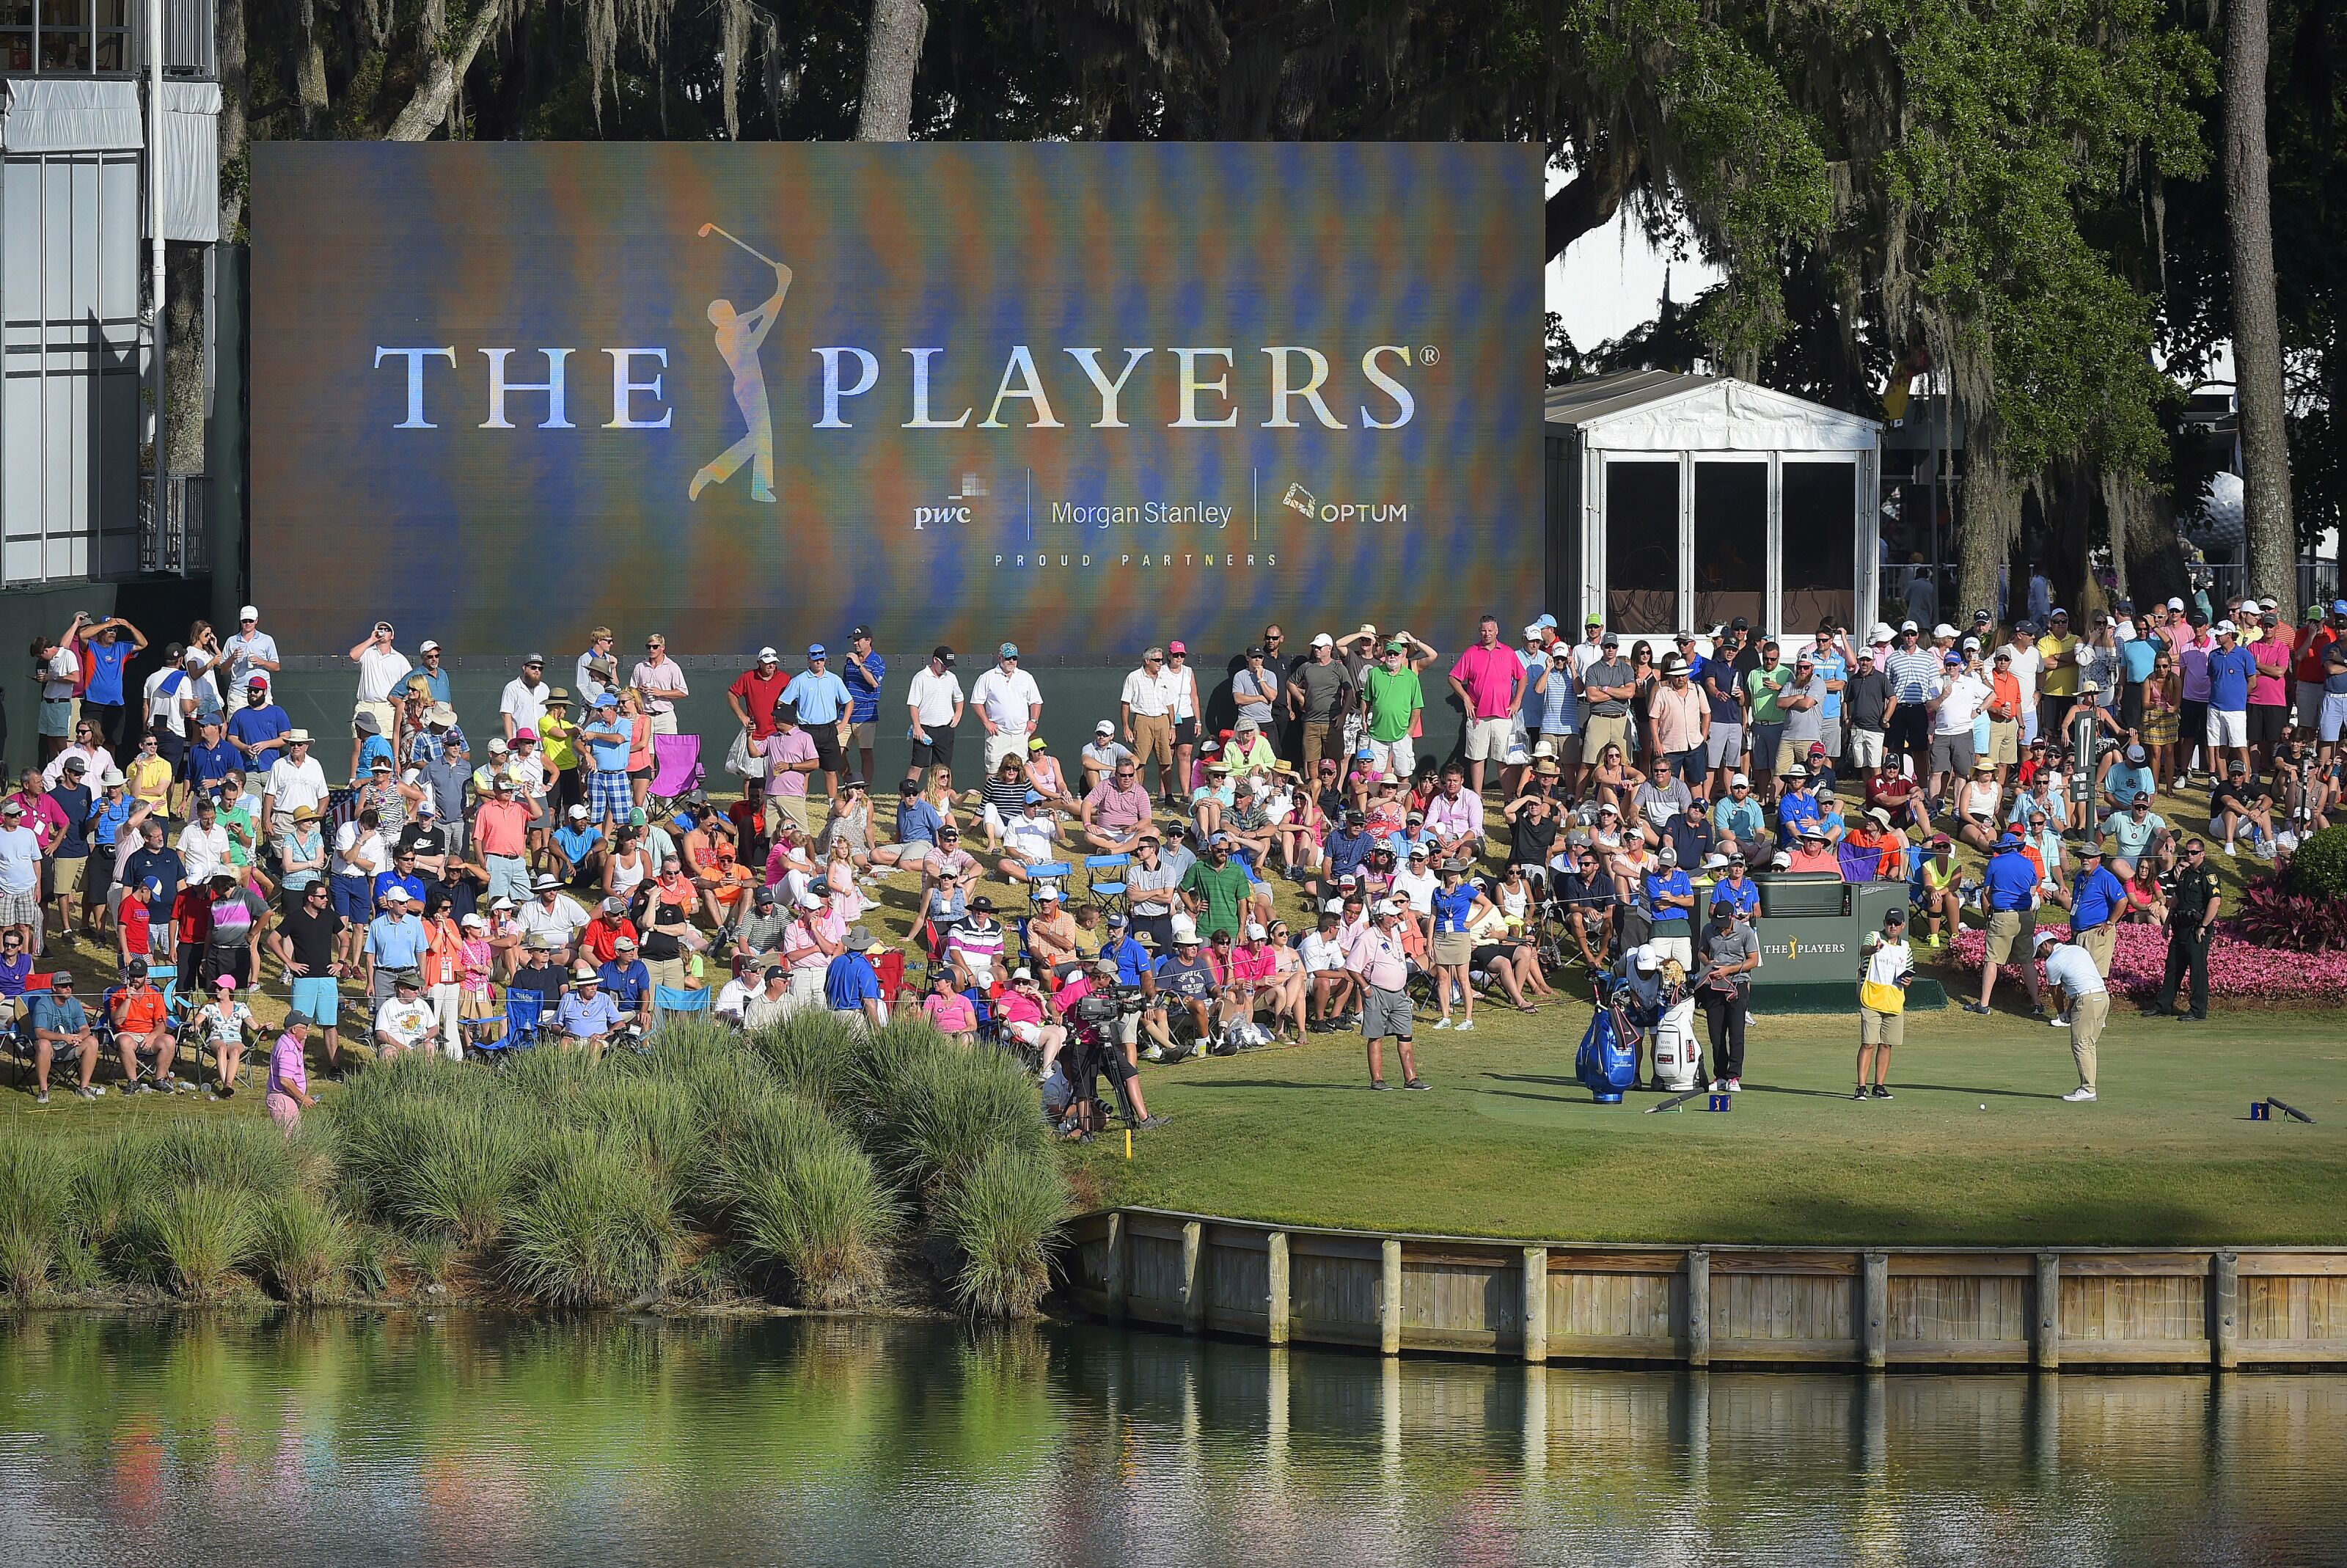 PONTE VEDRA BEACH, FL - MAY 15: A course scenic view of the 17th hole during the final round of THE PLAYERS Championship on THE PLAYERS Stadium Course at TPC Sawgrass on May 15, 2016. (Photo by Stan Badz/PGA TOUR)